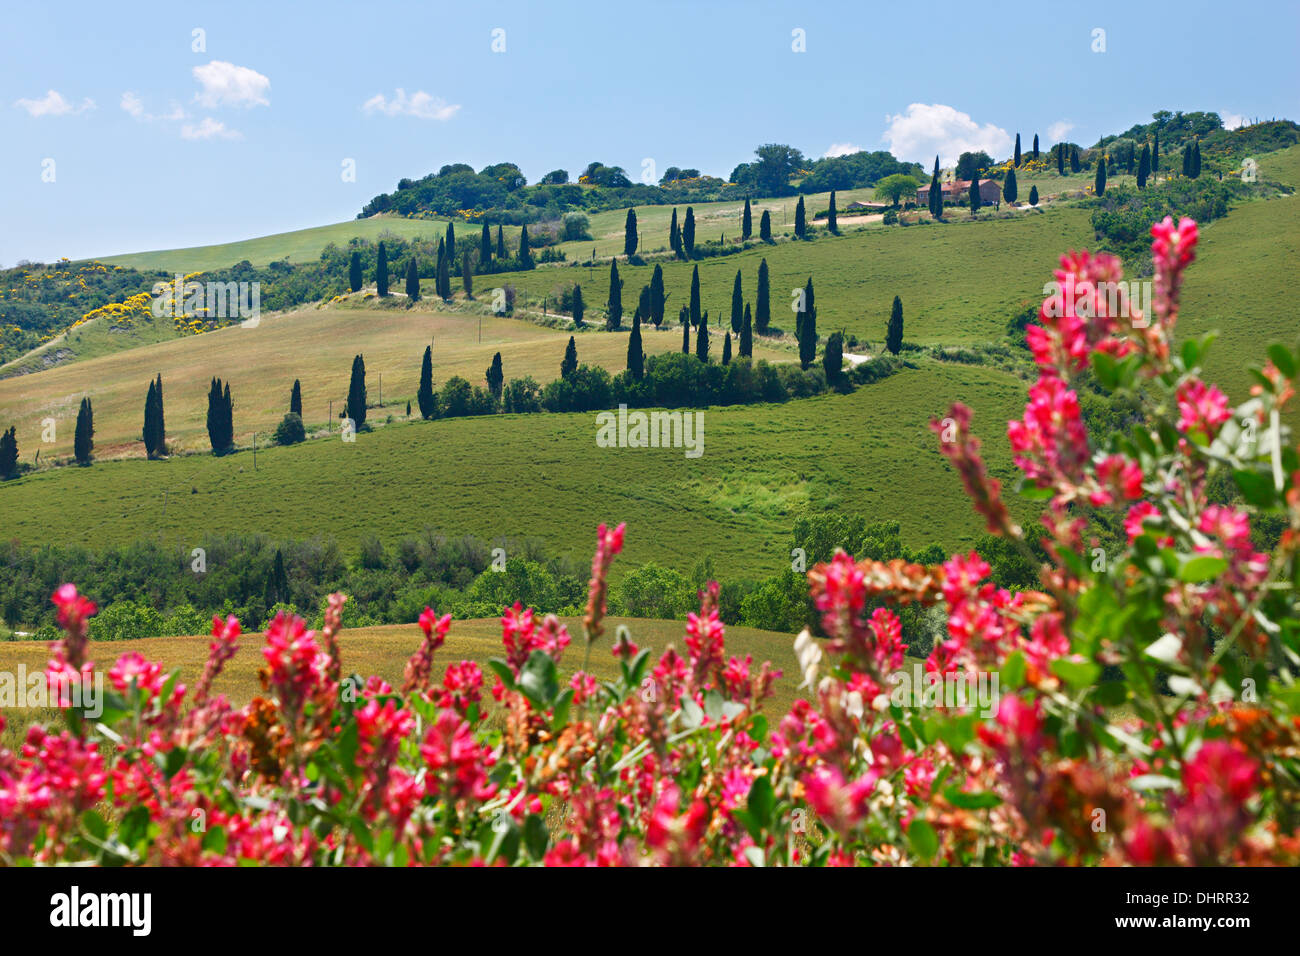 A winding road going amid green hills with flowers in the front, Tuscany, Province of Siena, Italy, Europe. - Stock Image